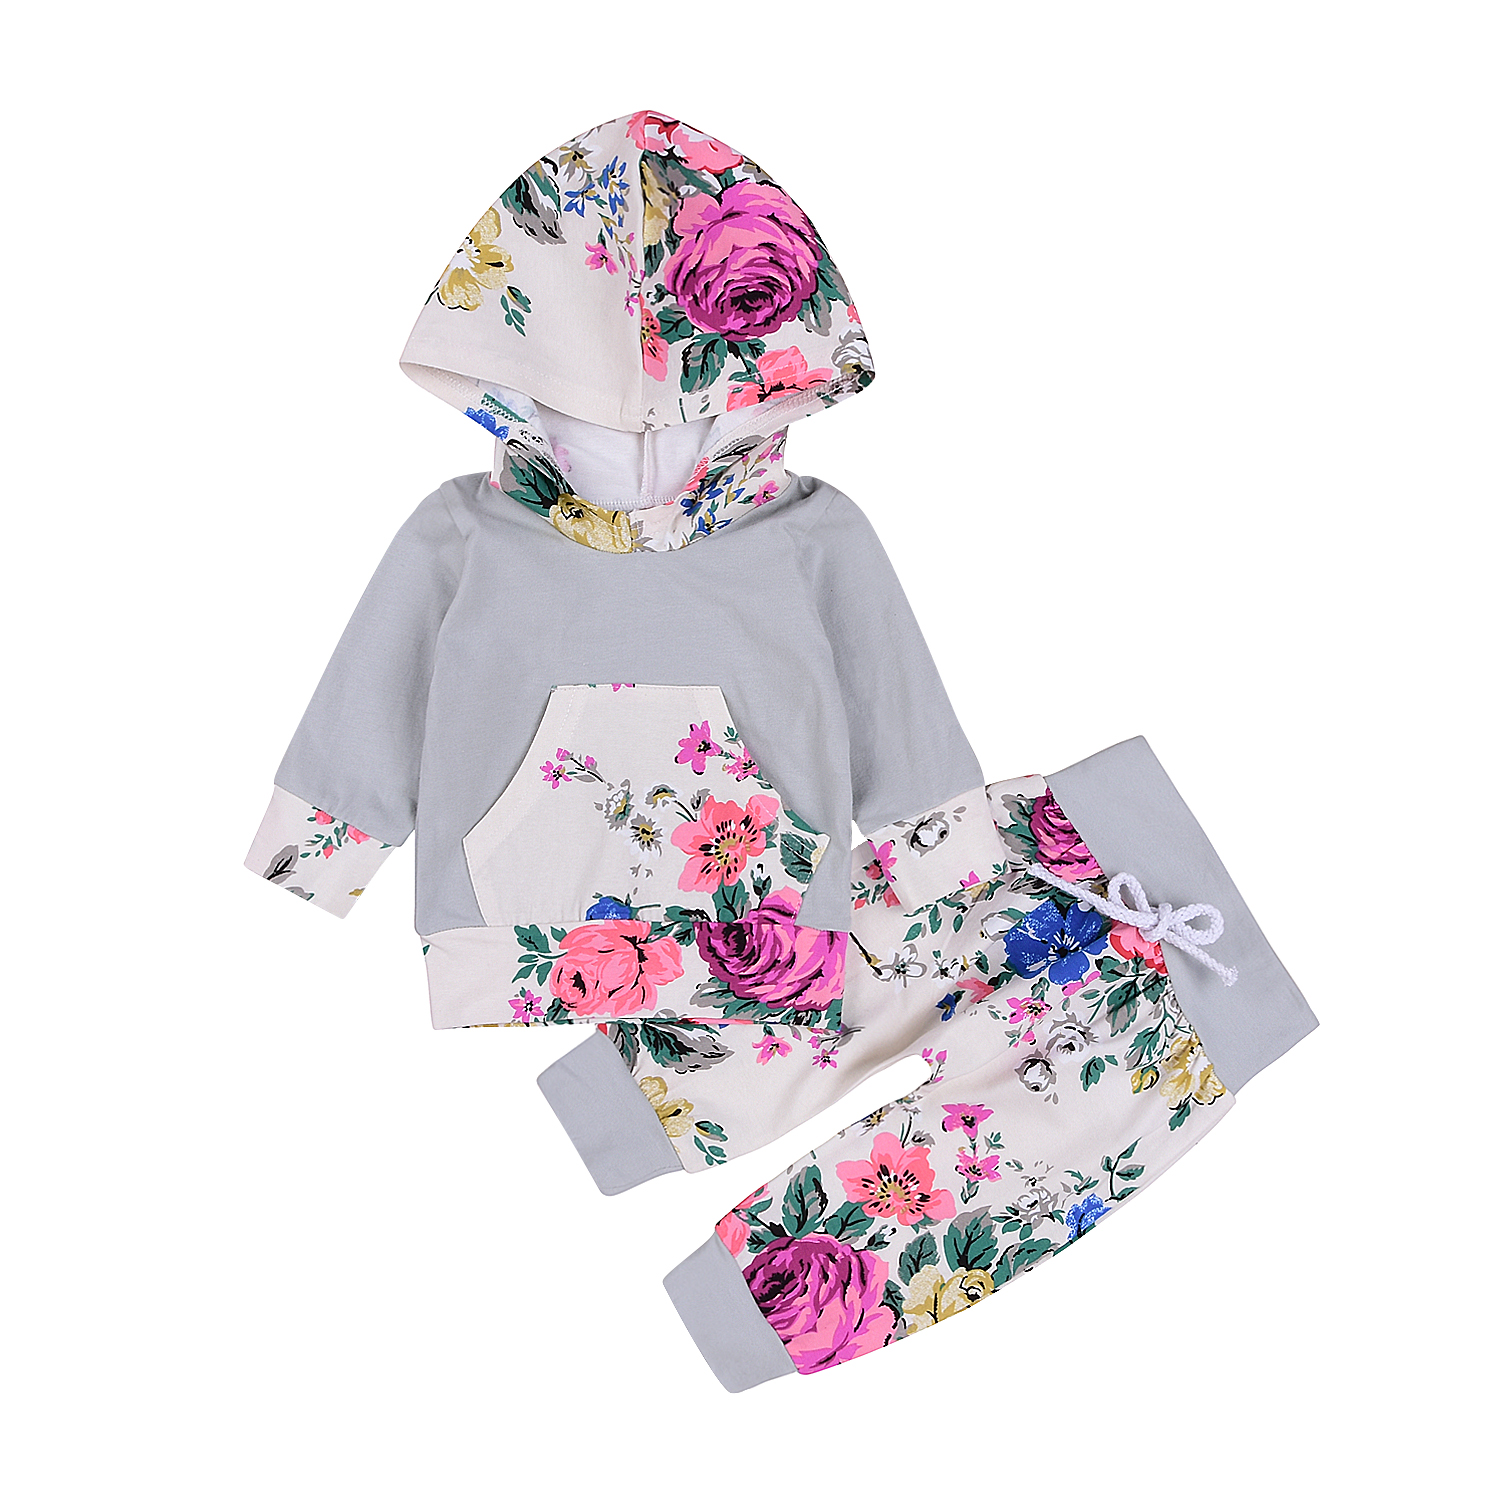 Newborn Toddler Baby Boy Girls Clothes Infant Cotton Cute Long Sleeve Floral Hooded Tops Pants 2Pcs Outfits Set Clothes cotton letter tops romper pants newborn infant baby boy girl 2017 new arrival fashion outfits clothes sunsuit age 0 3y